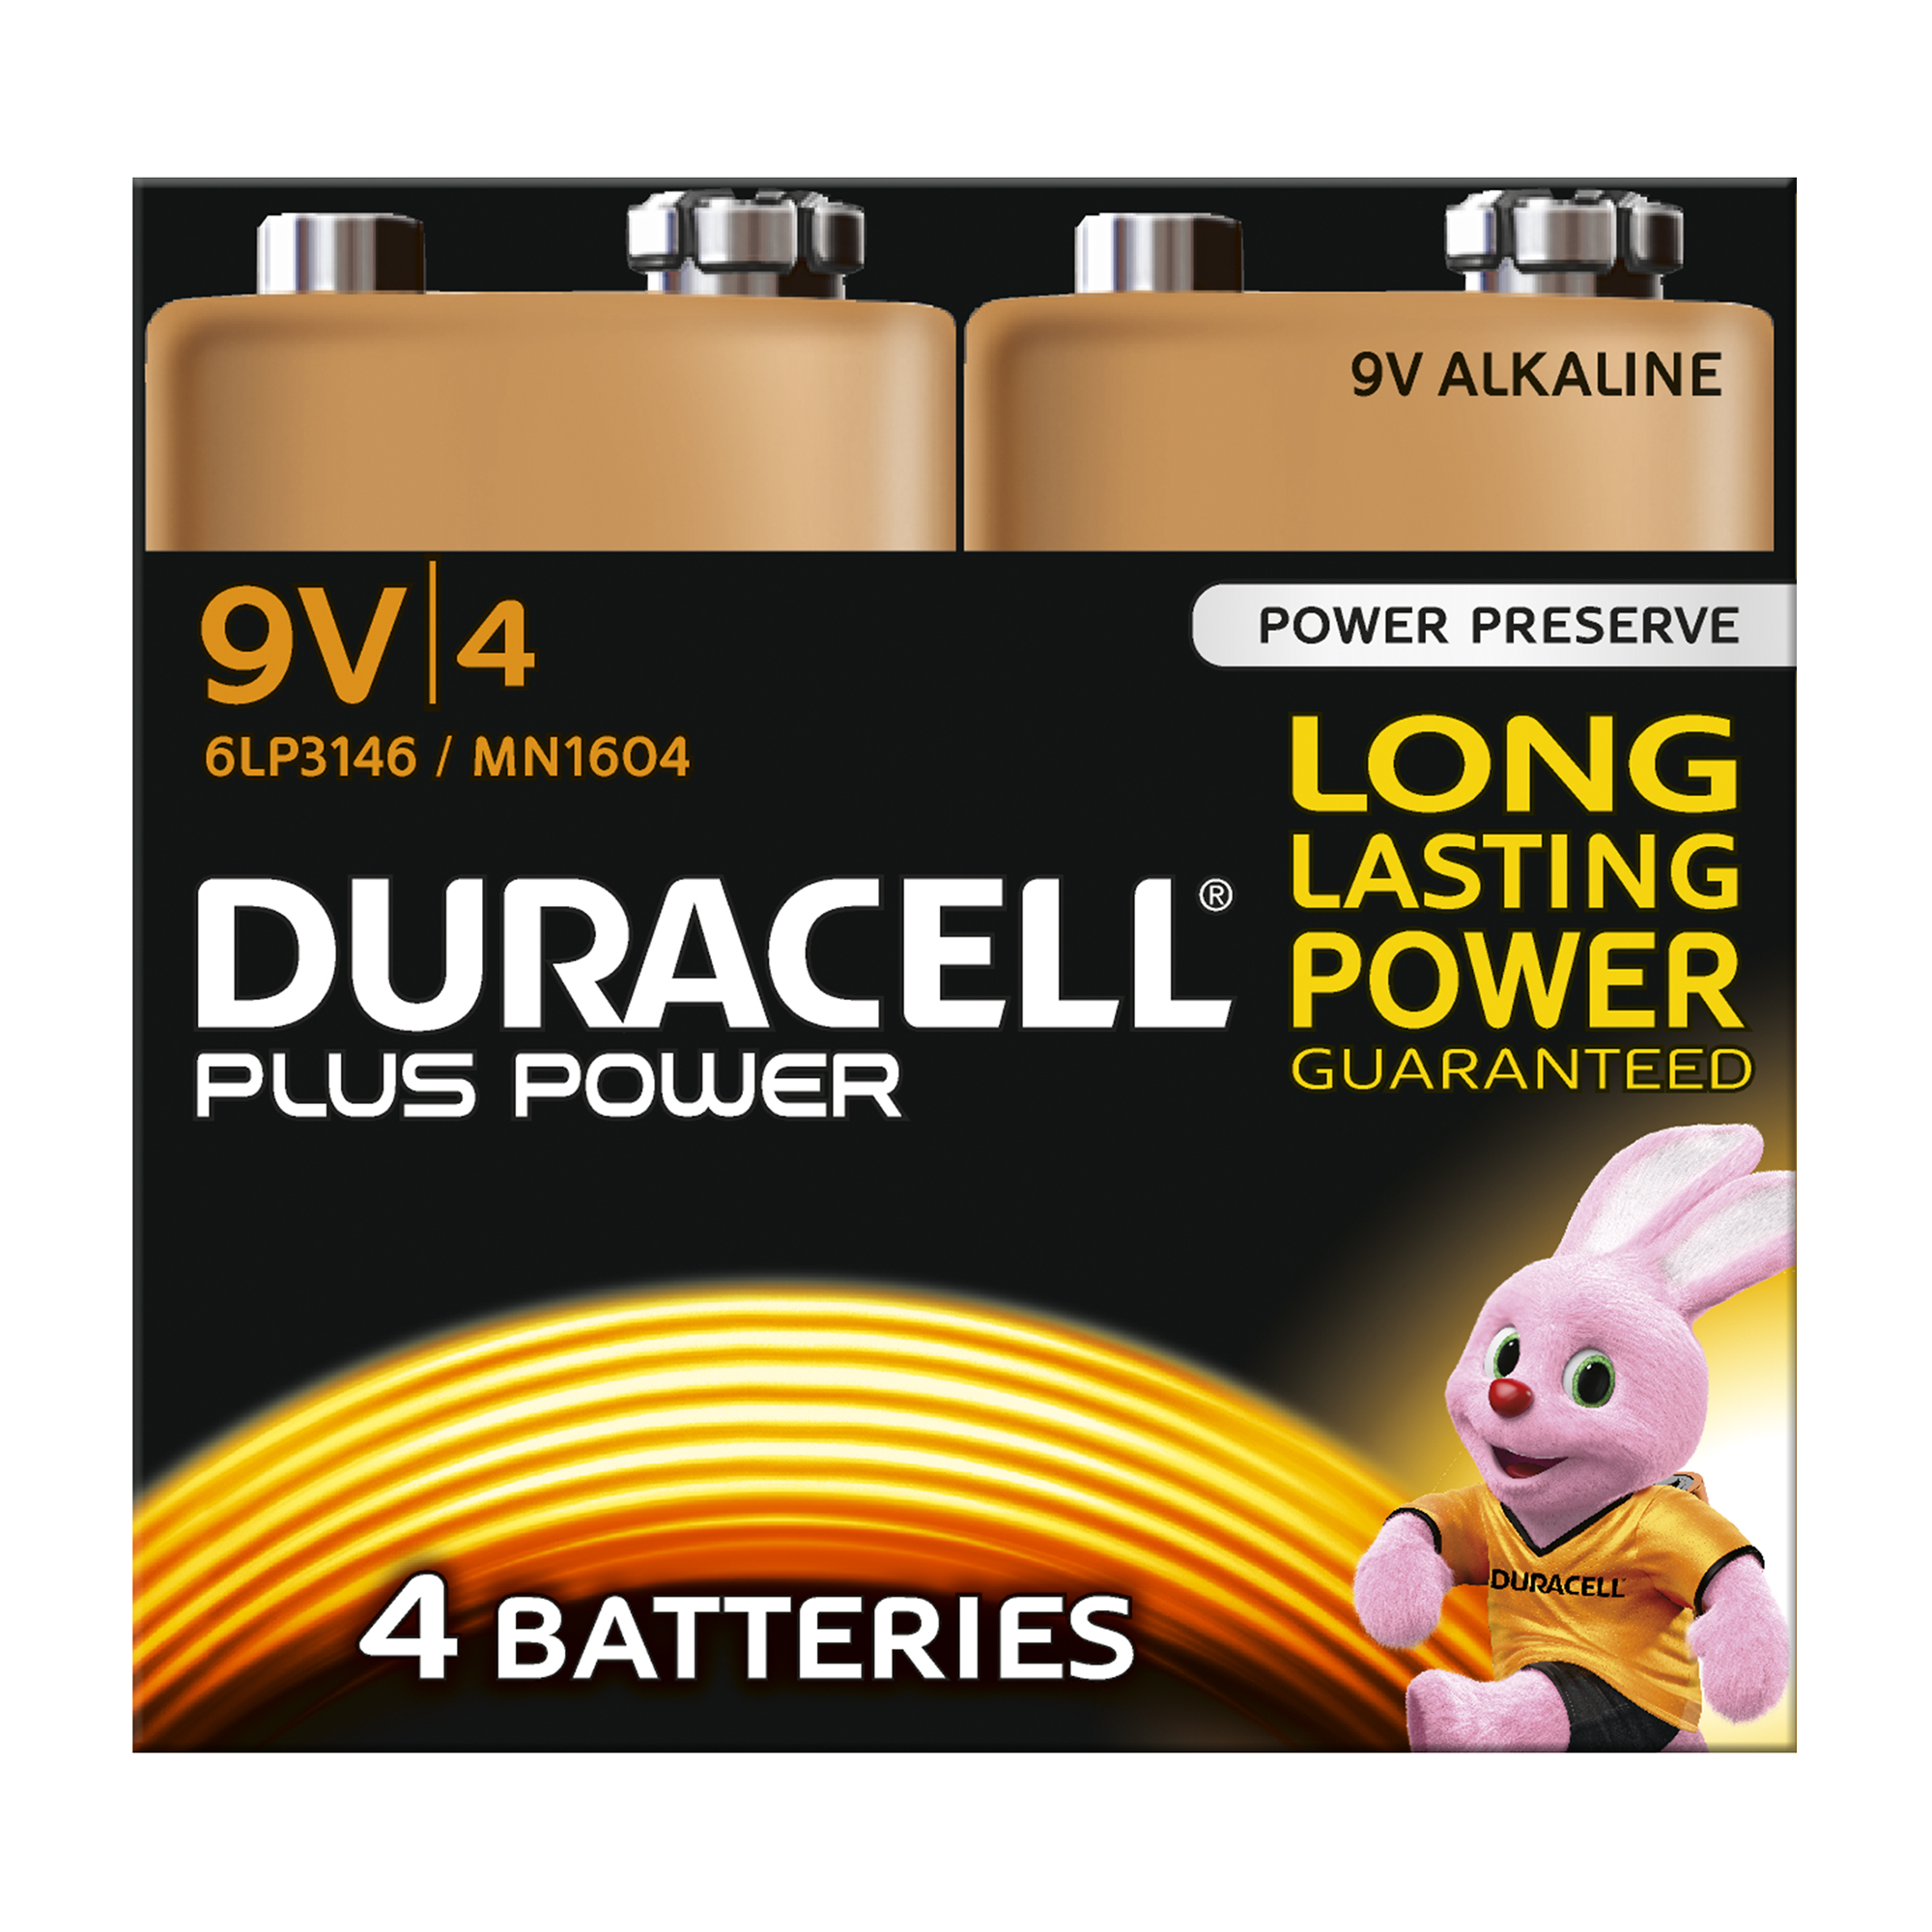 9V Duracell Plus Power Battery Alkaline 9V Ref 81275463 Pack 4